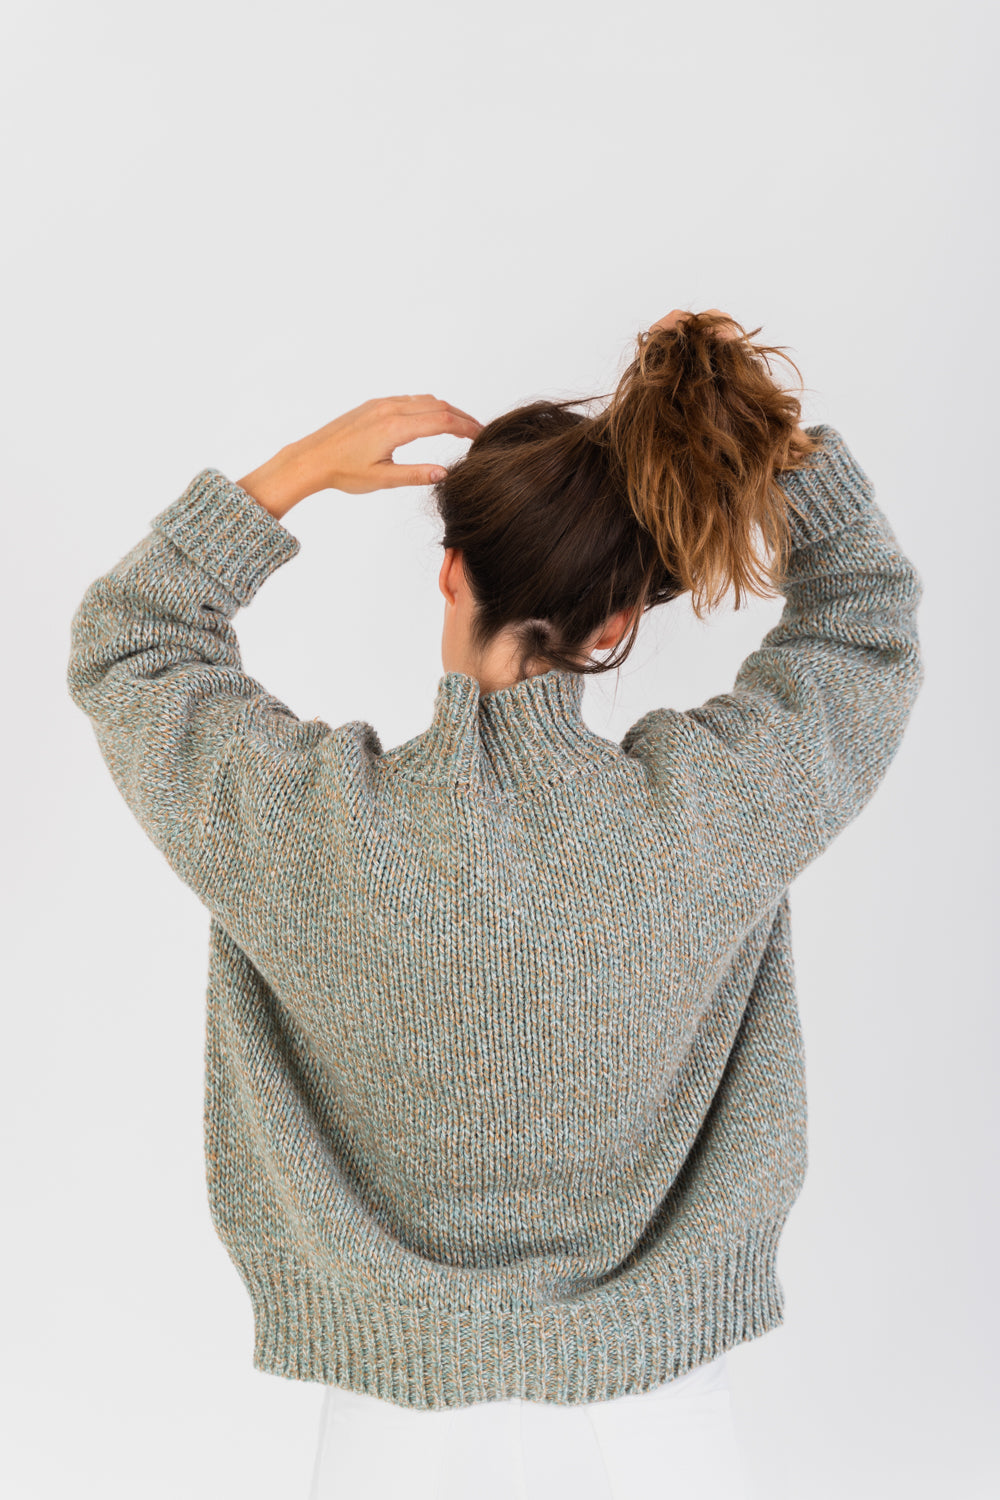 Recycled High Neck Jumper | Tops | Näz | [product_tag] - Fair Bazaar Ethical Living